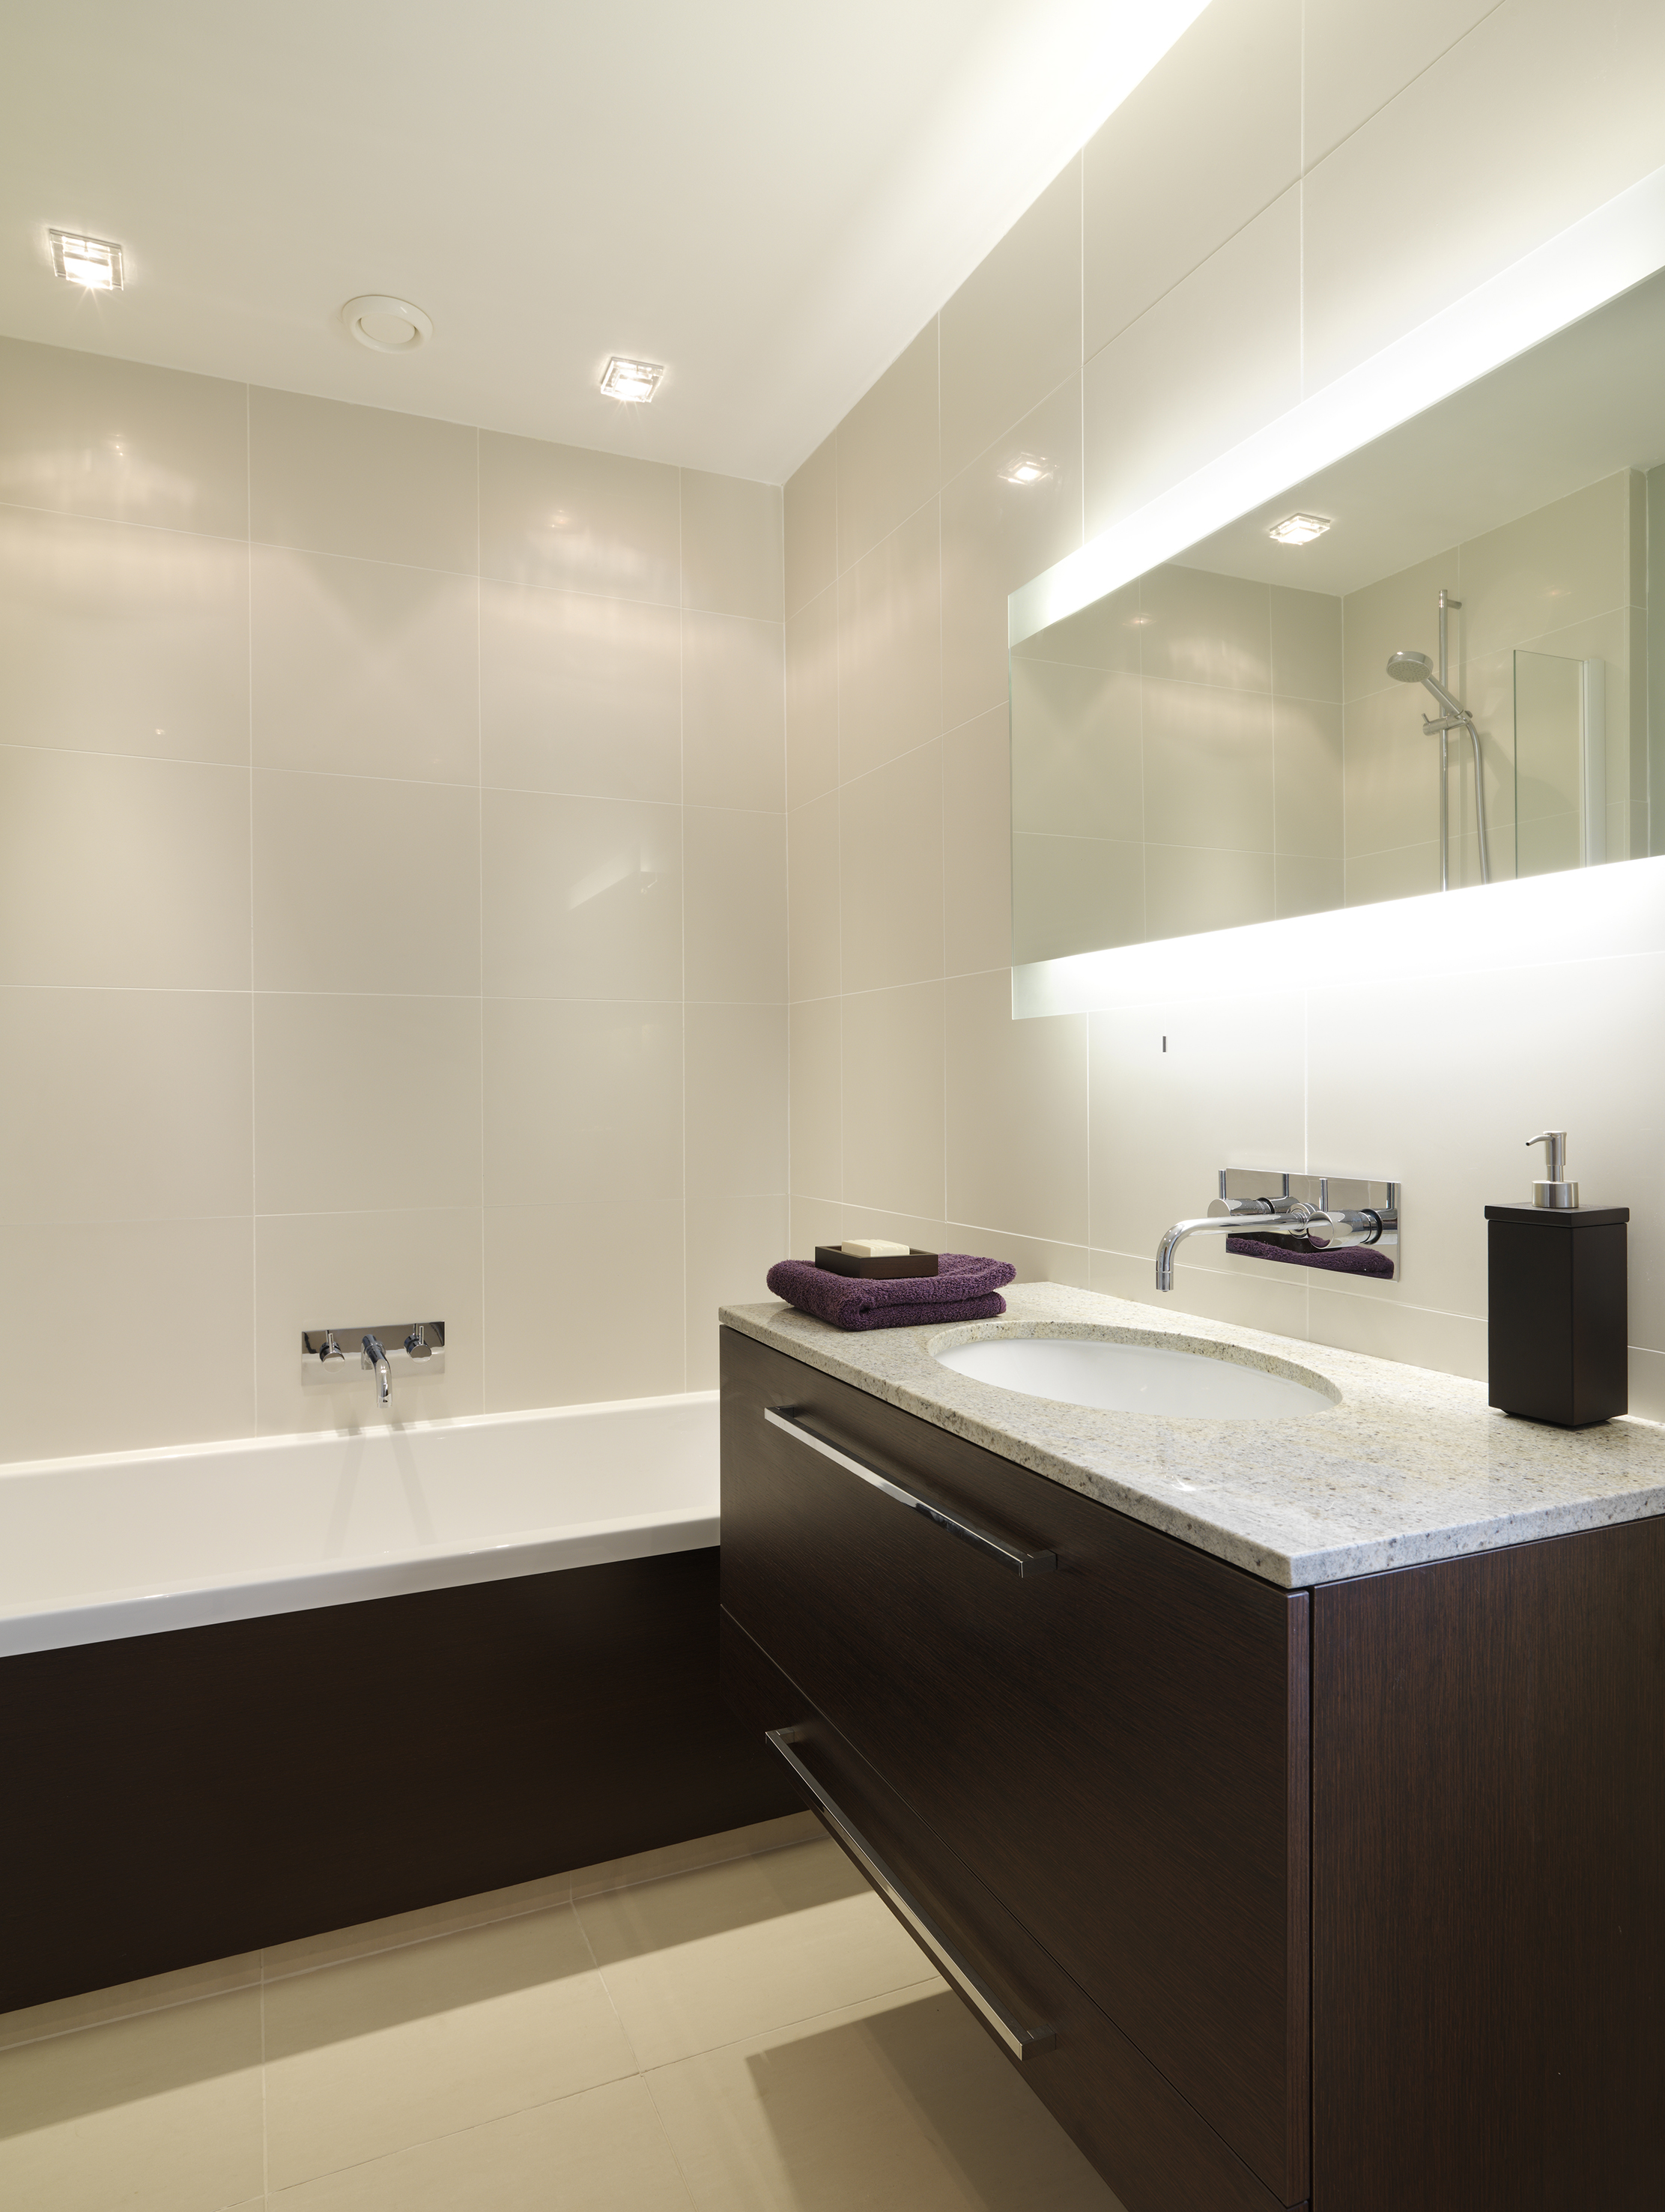 Why You Should Install Bathroom Recessed Ceiling Lights